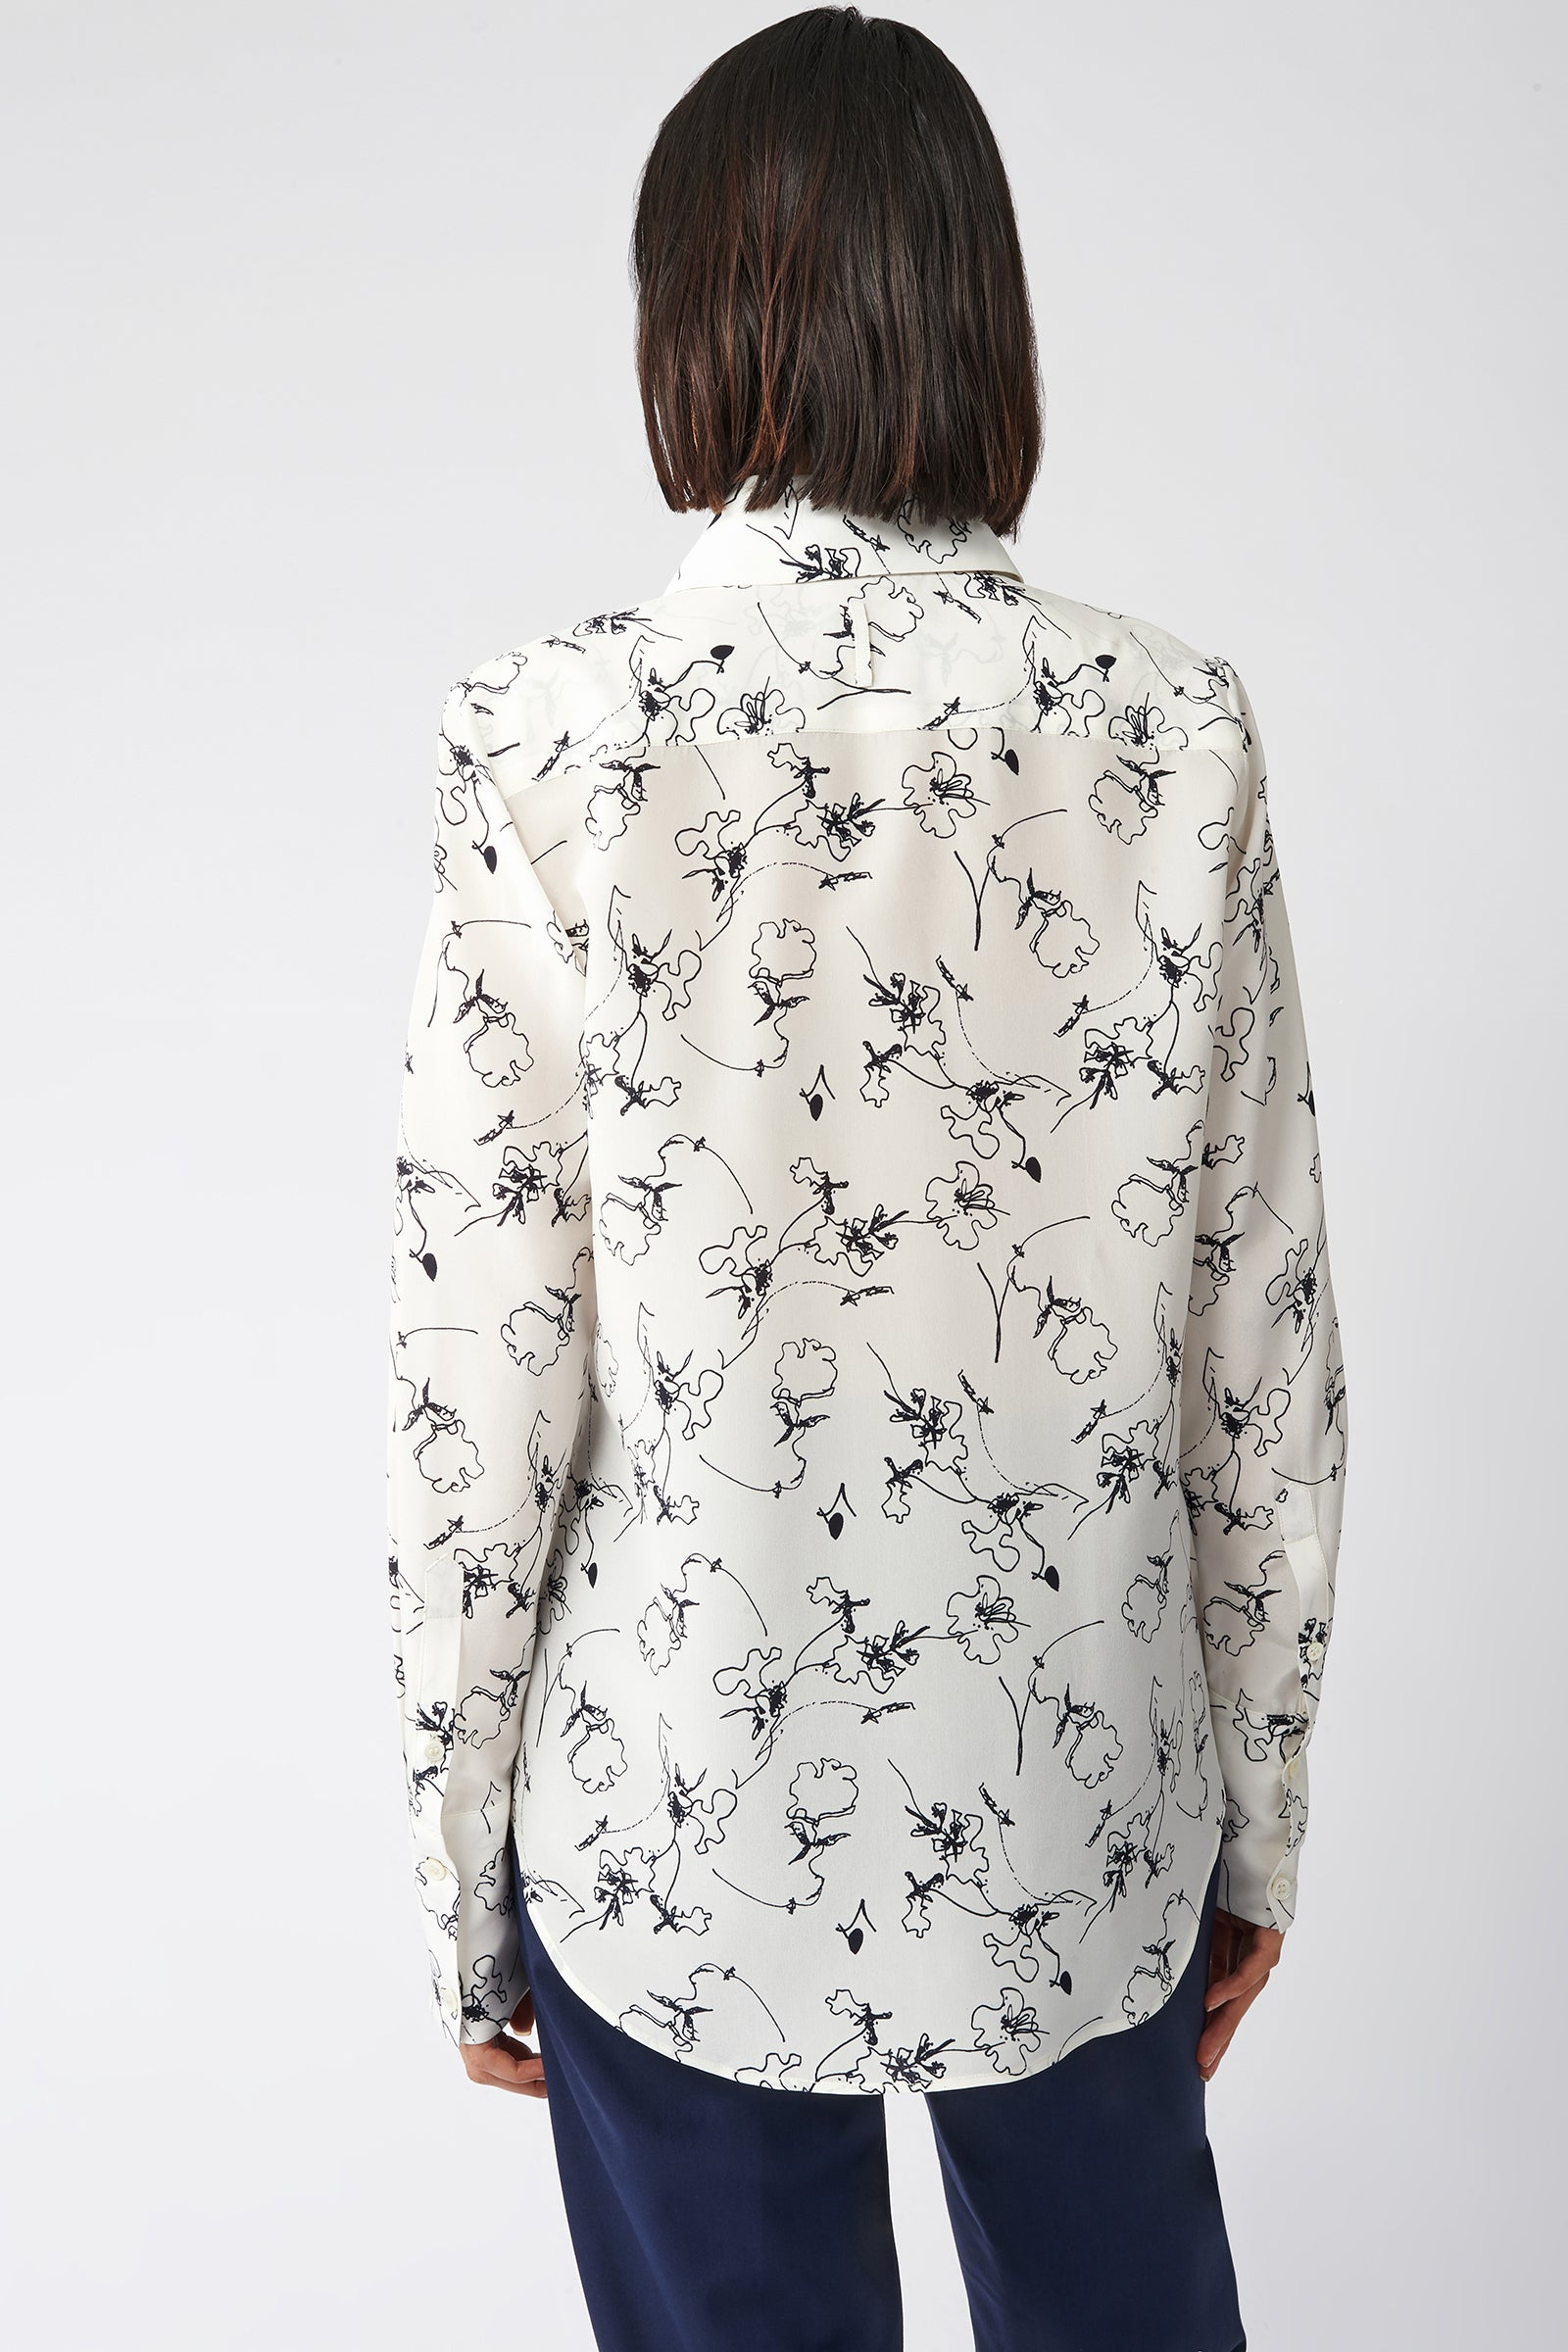 Kal Rieman Classic Tailored Blouse in Navy Floral on Model Back View